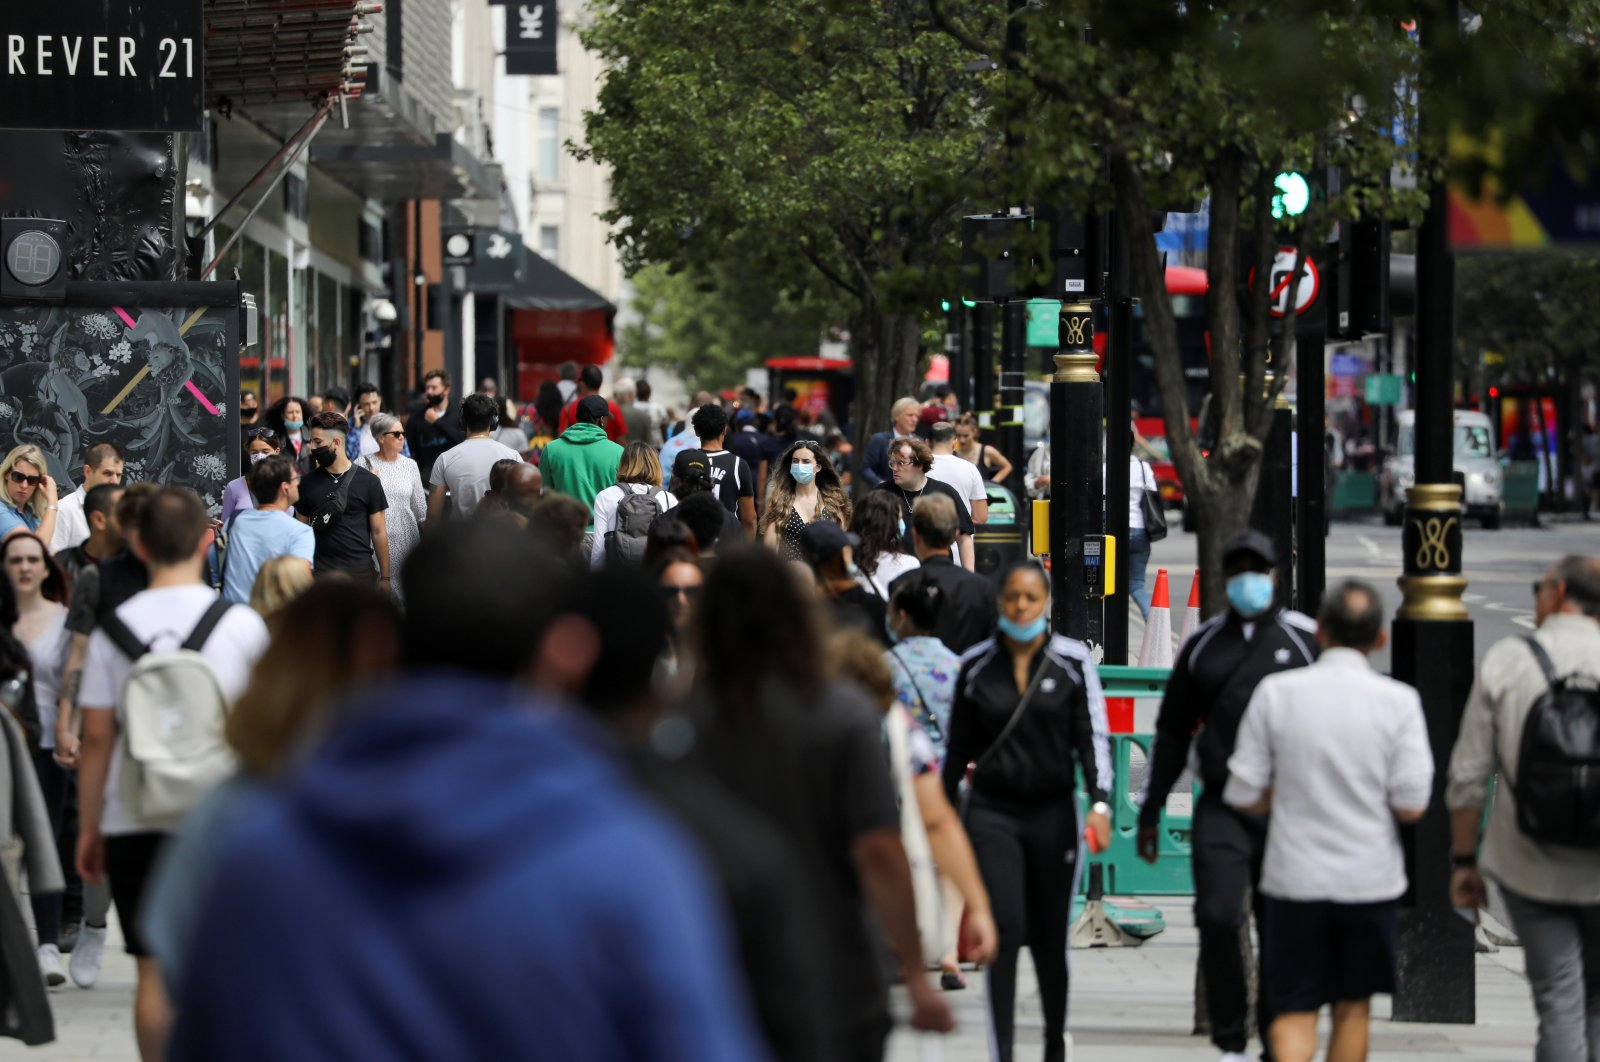 People, some of them wearing protective masks, walk down Oxford Street as the spread of the coronavirus disease (COVID-19) continues, in London, Britain July 24, 2020. (REUTERS Photo)